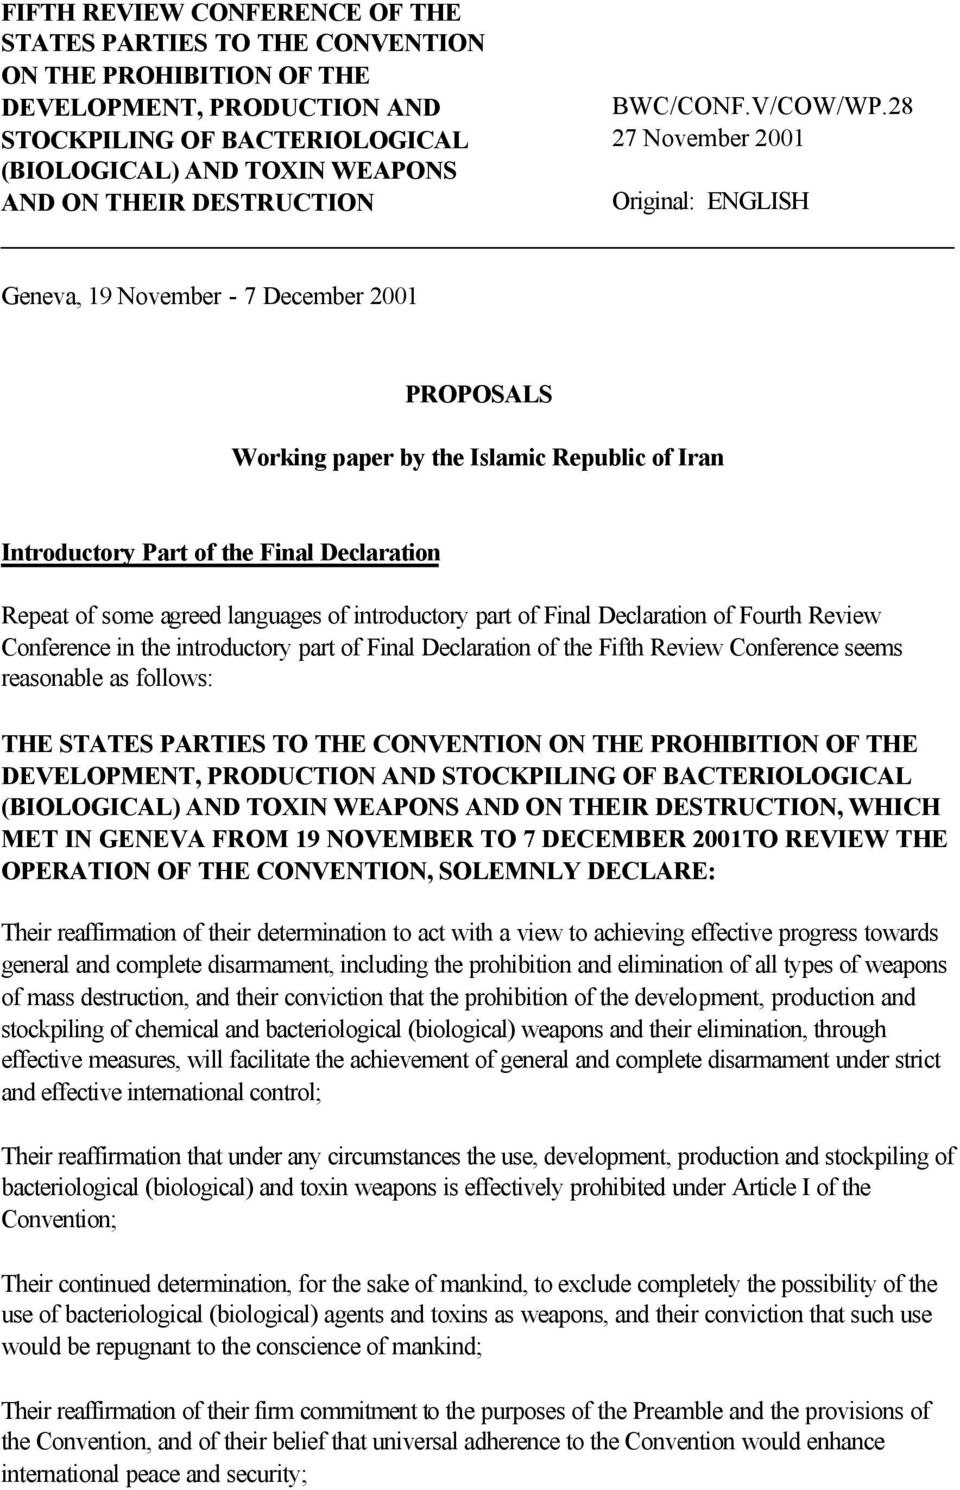 Islamic Republic of Iran Introductory Part of the Final Declaration Repeat of some agreed languages of introductory part of Final Declaration of Fourth Review Conference in the introductory part of